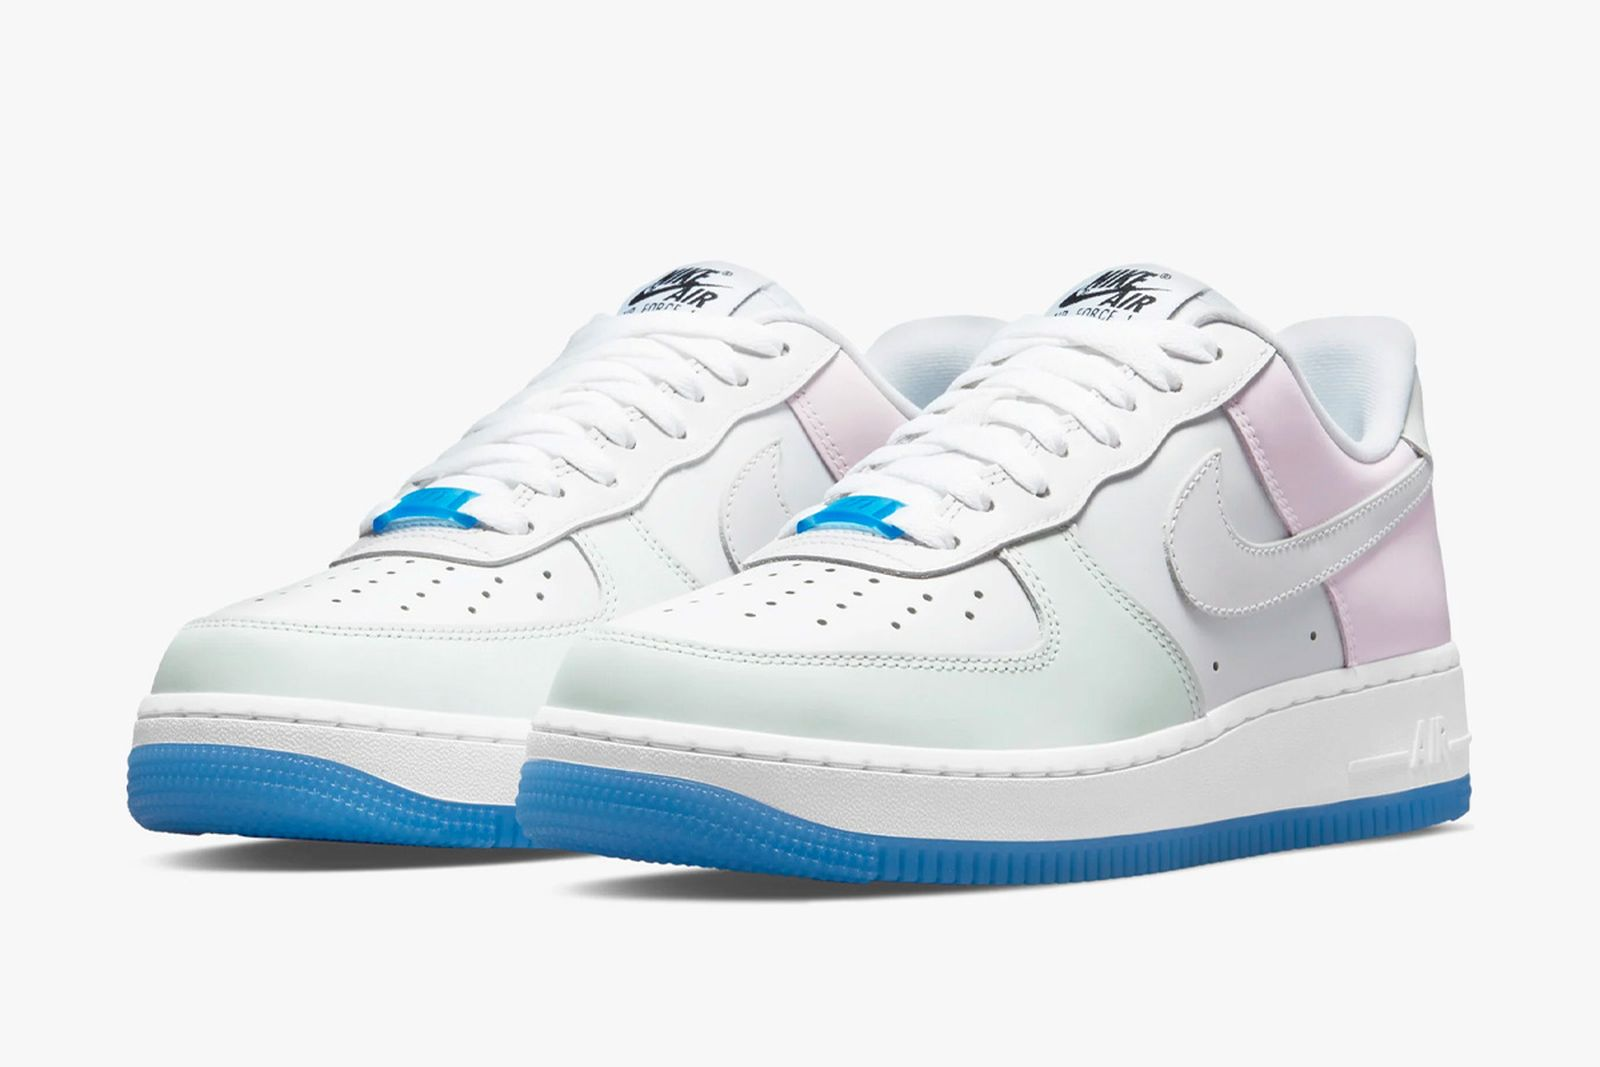 nike-air-force-1-air-force-1-07-lx-release-date-info-price-04